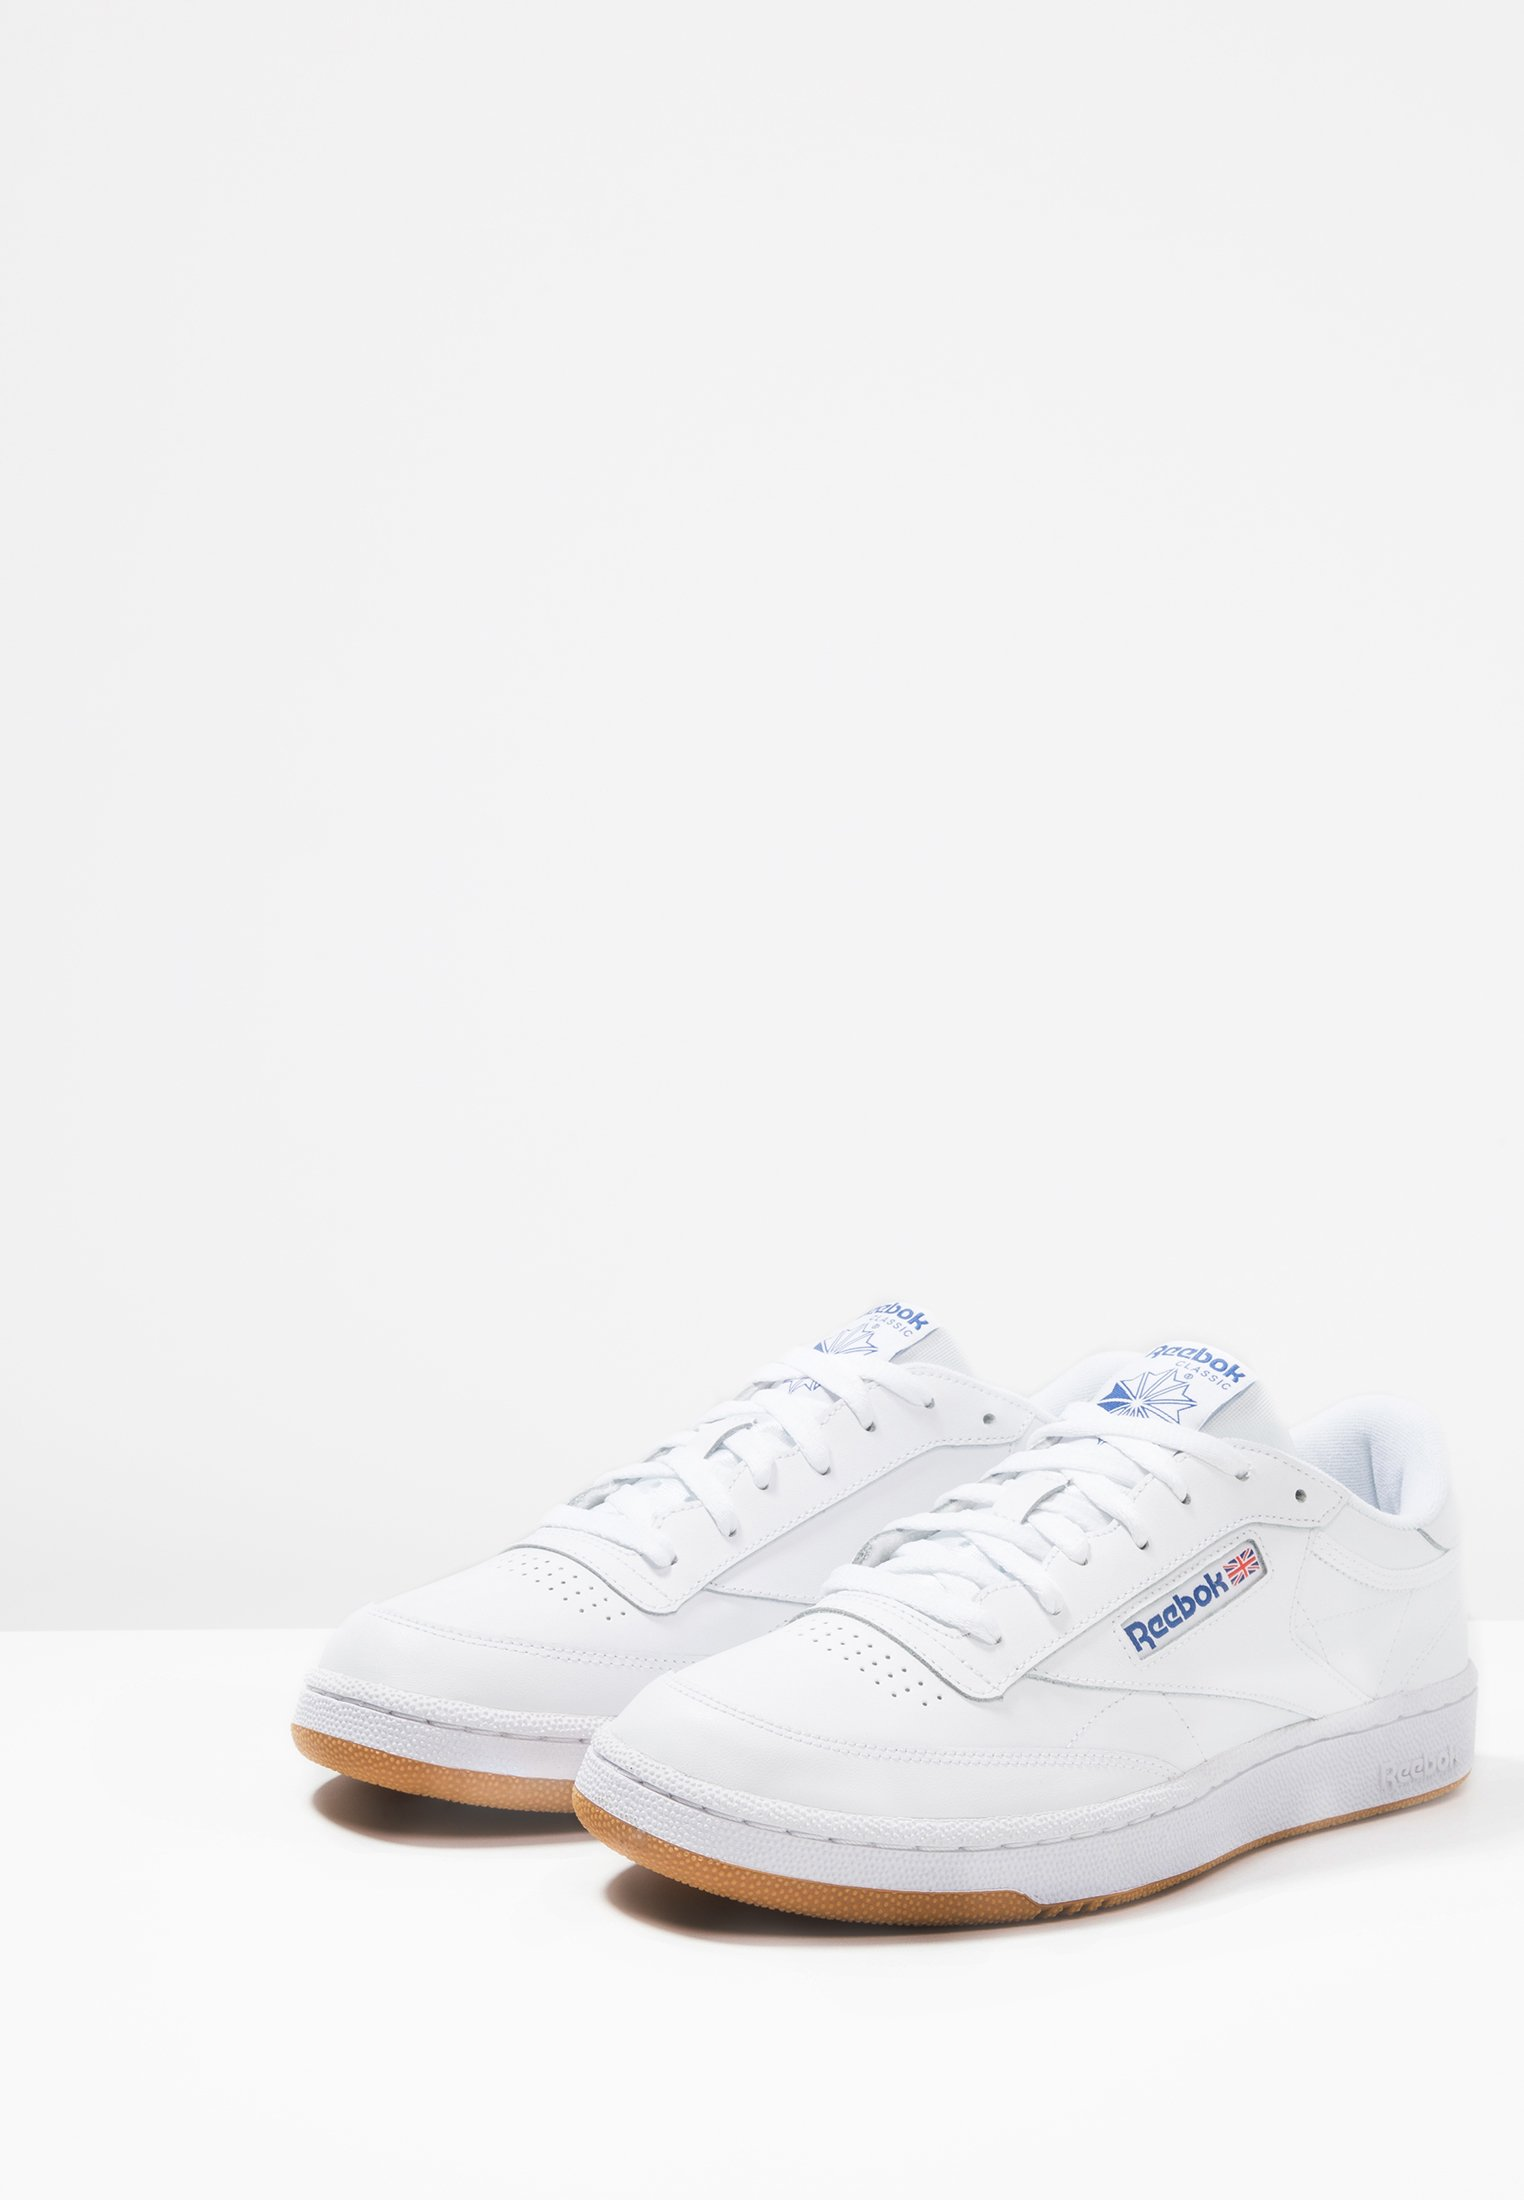 Reebok Classic Club C 85 Leather Upper Shoes - Sneakers White/royal